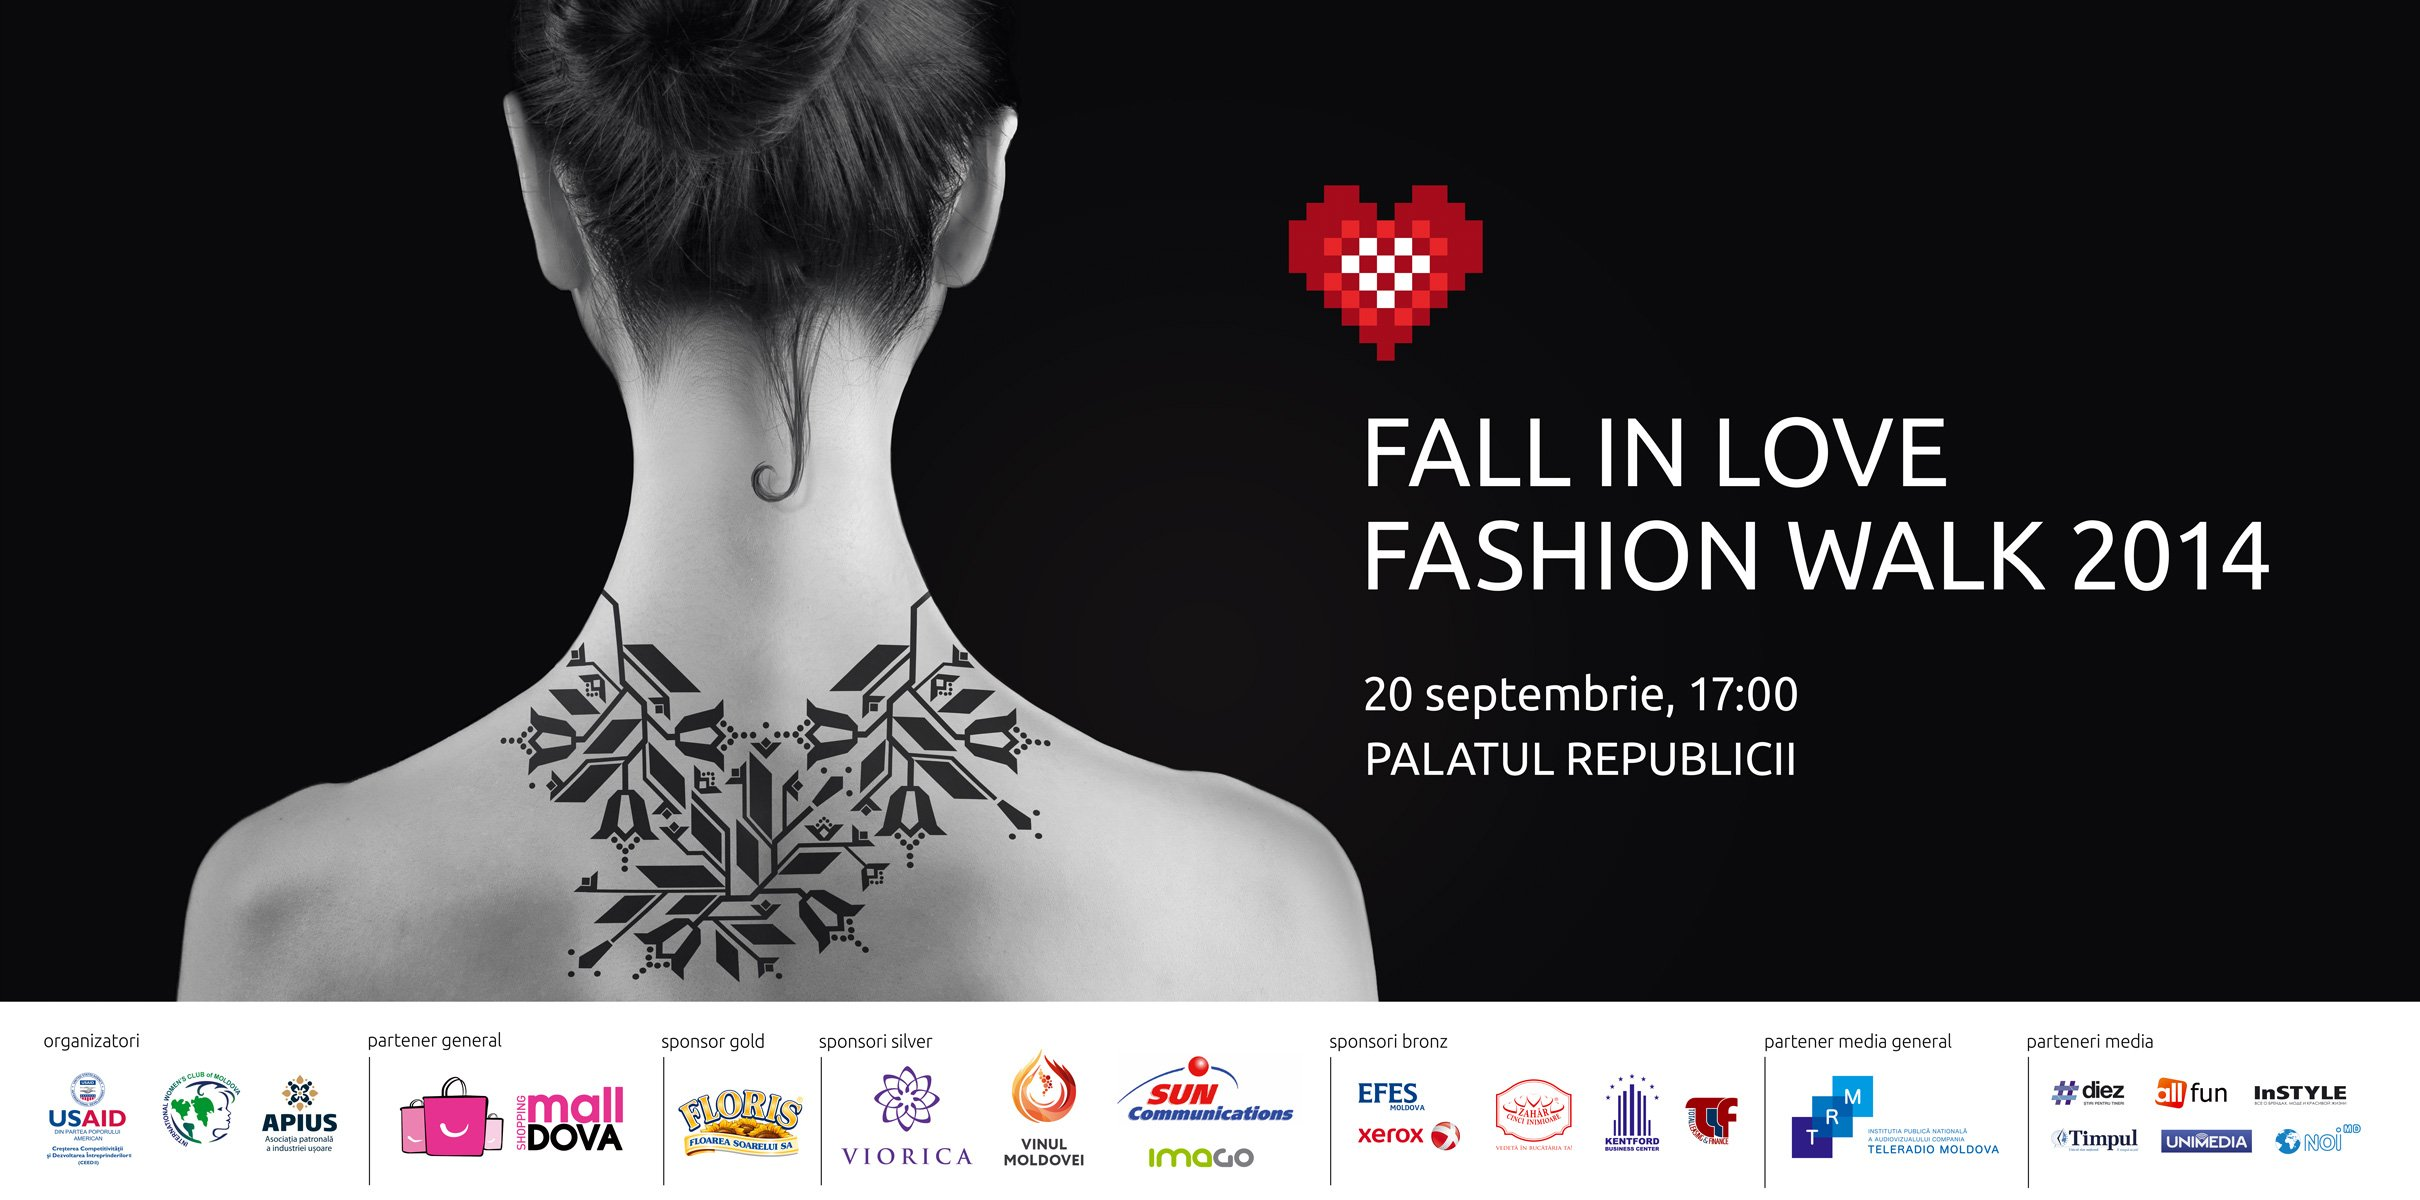 Fall in love - Fashion Walk 2014